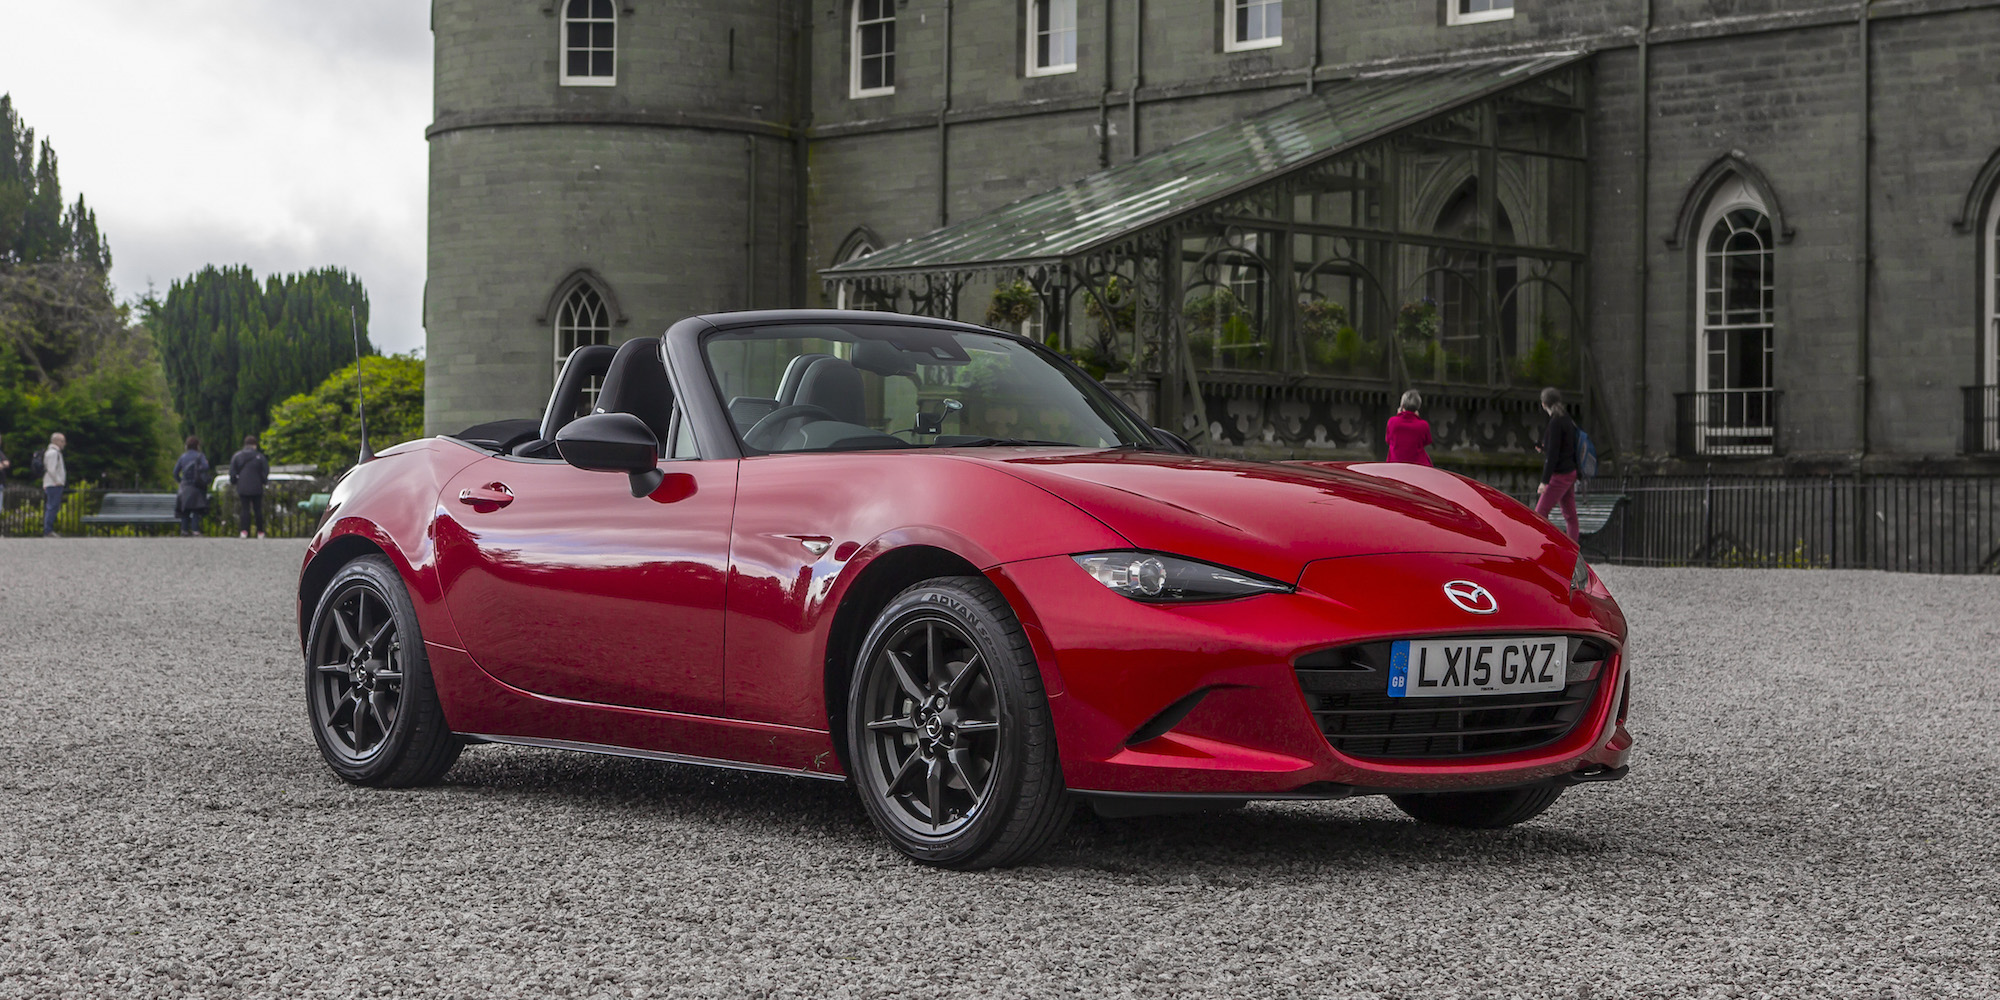 2016 Mazda Mx 5 Exterior Preview (View 17 of 31)